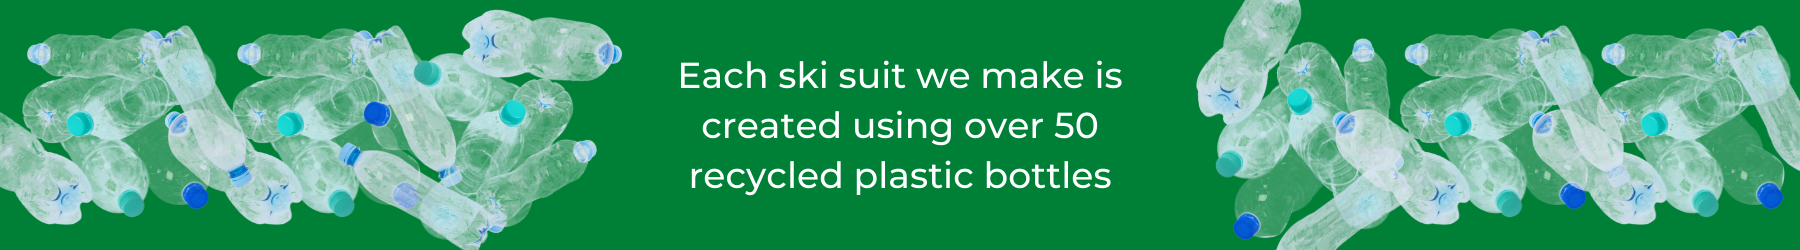 Ski Suits made using recycled plastic bottles